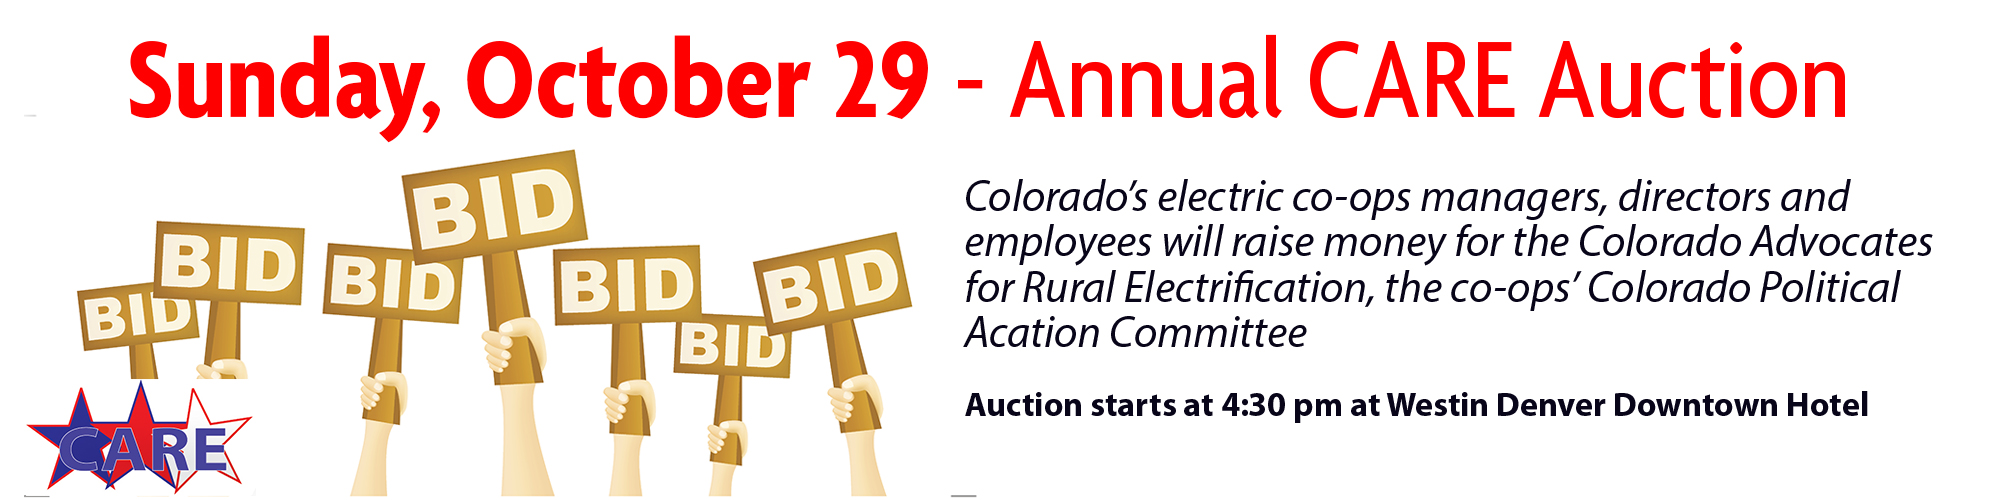 Sliders-CARE-Auction